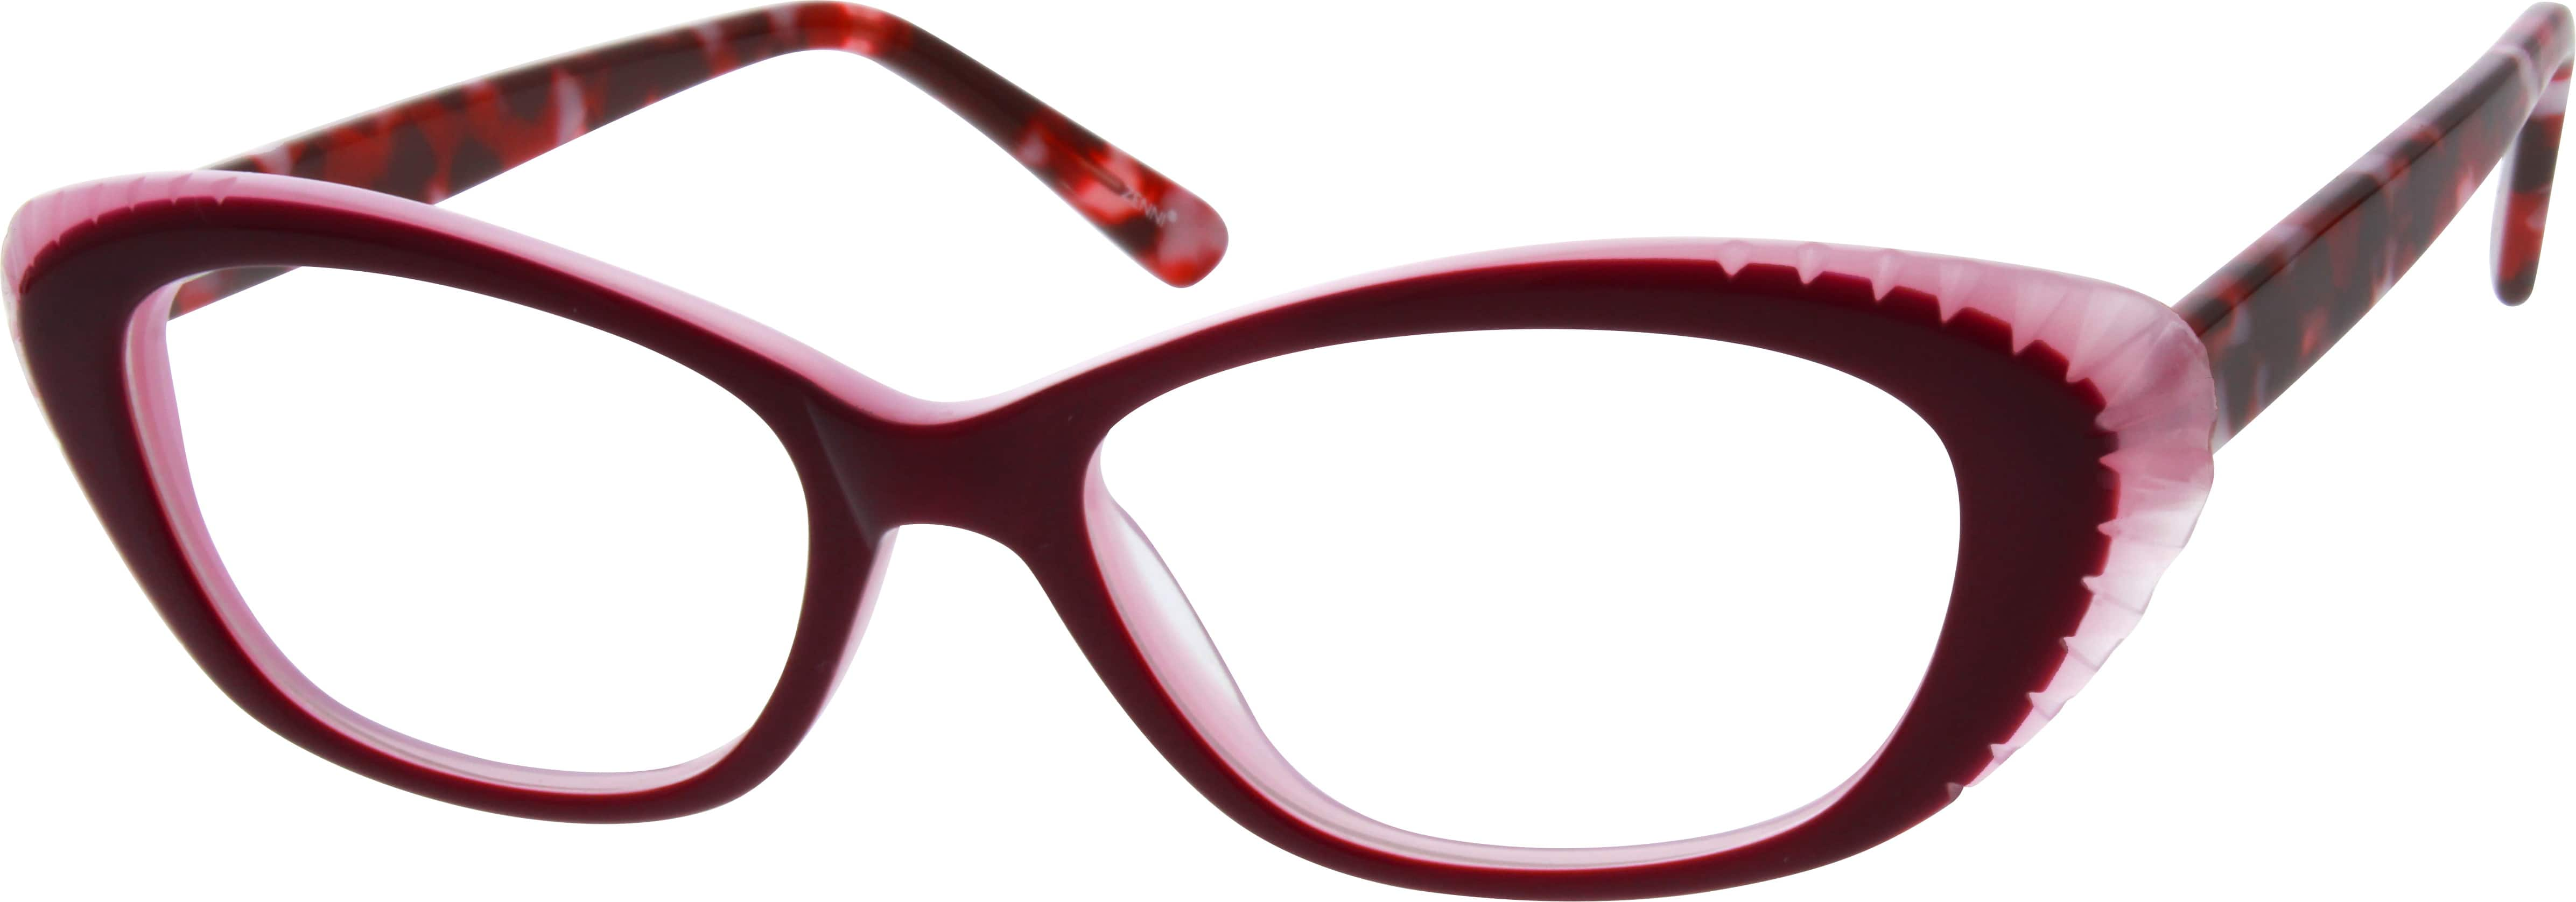 Women Full Rim Acetate/Plastic Eyeglasses #181817